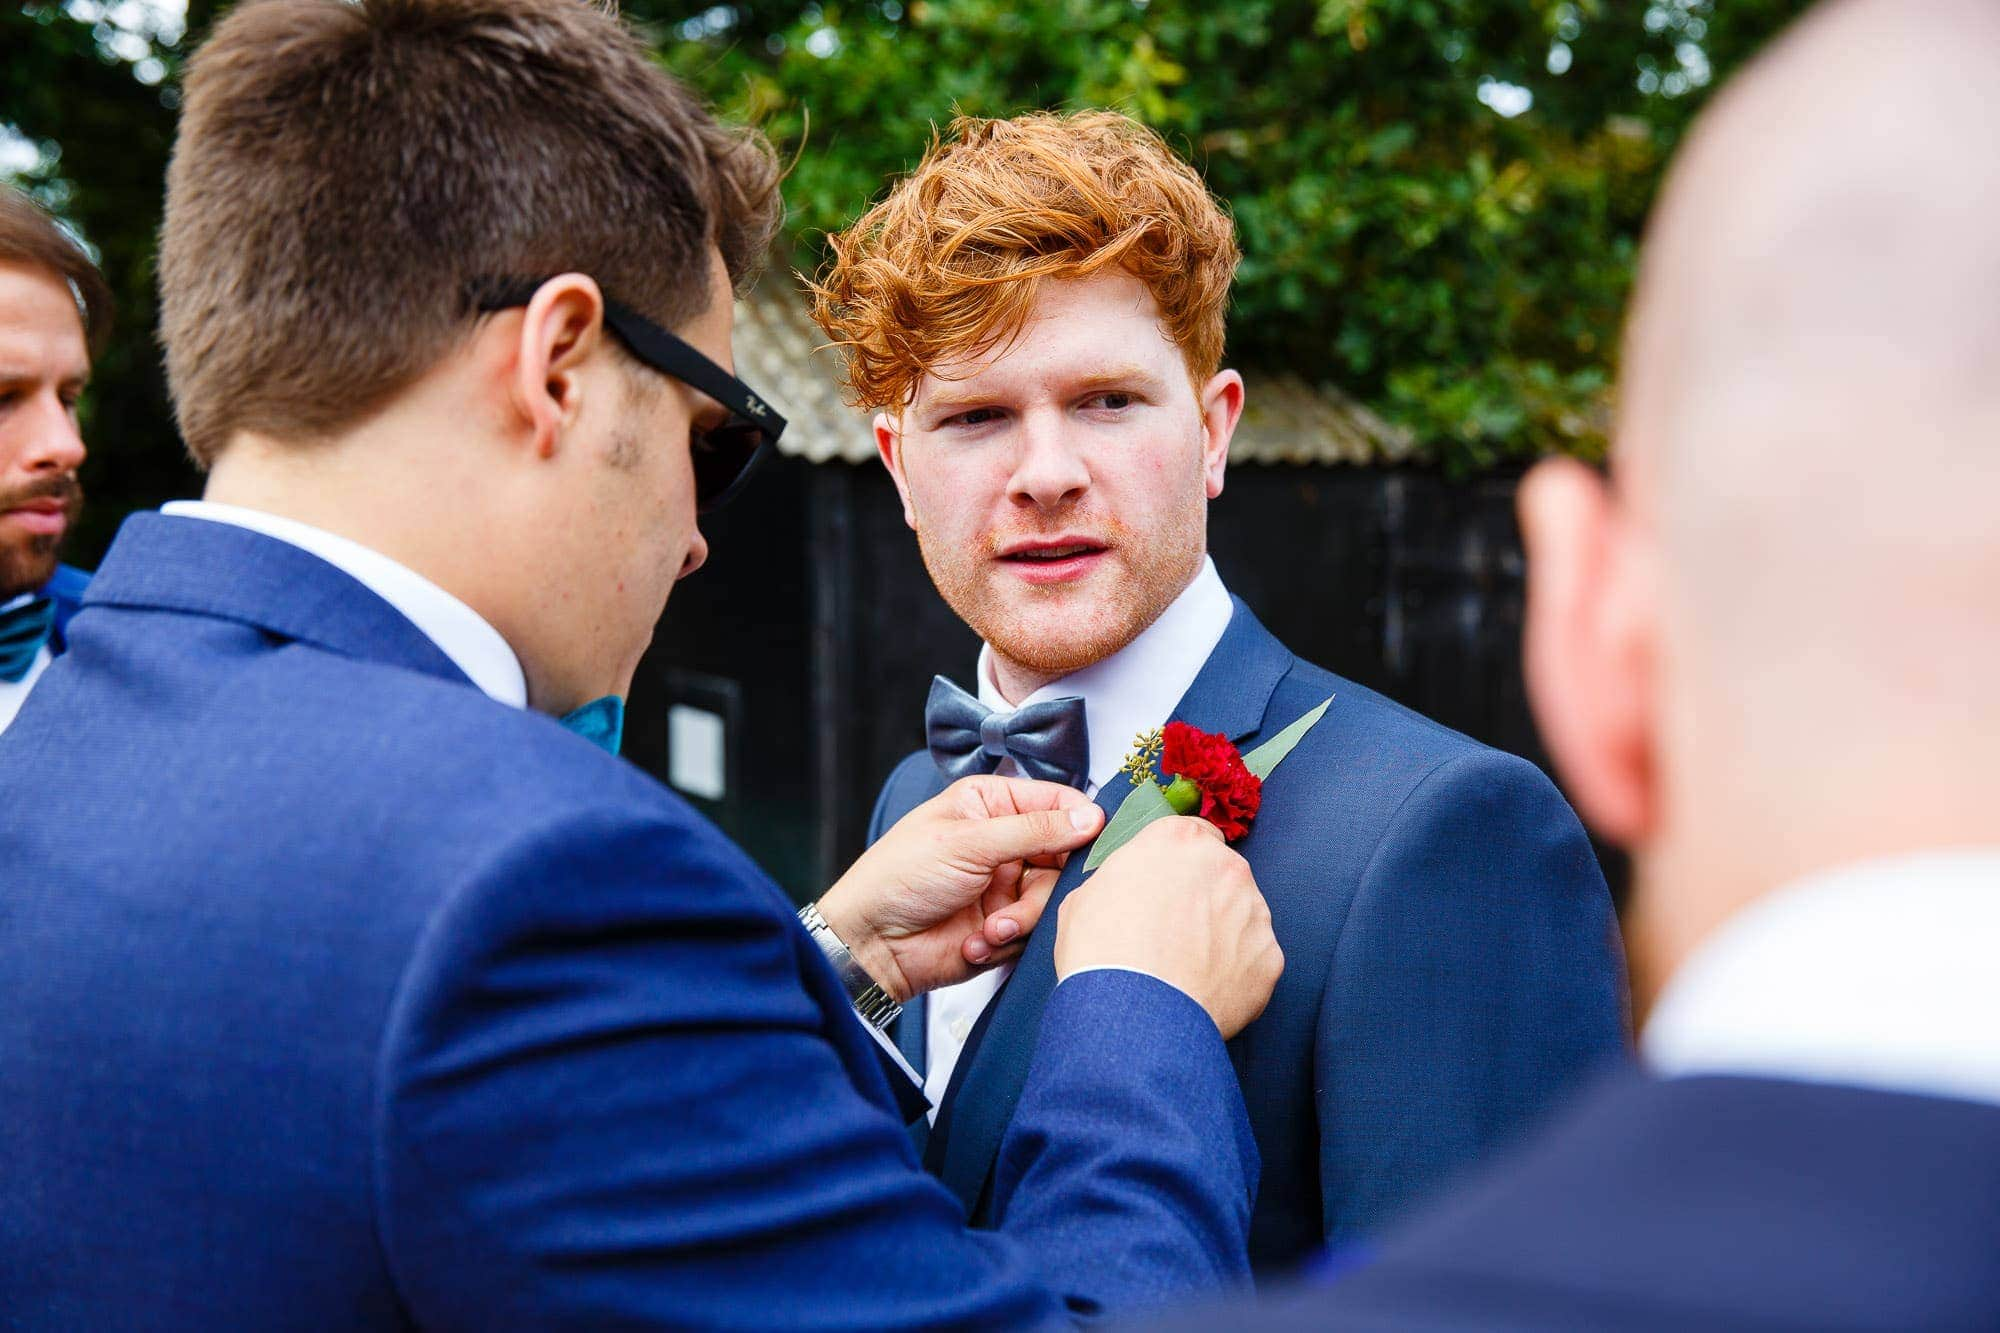 Groom having button hold pinned on